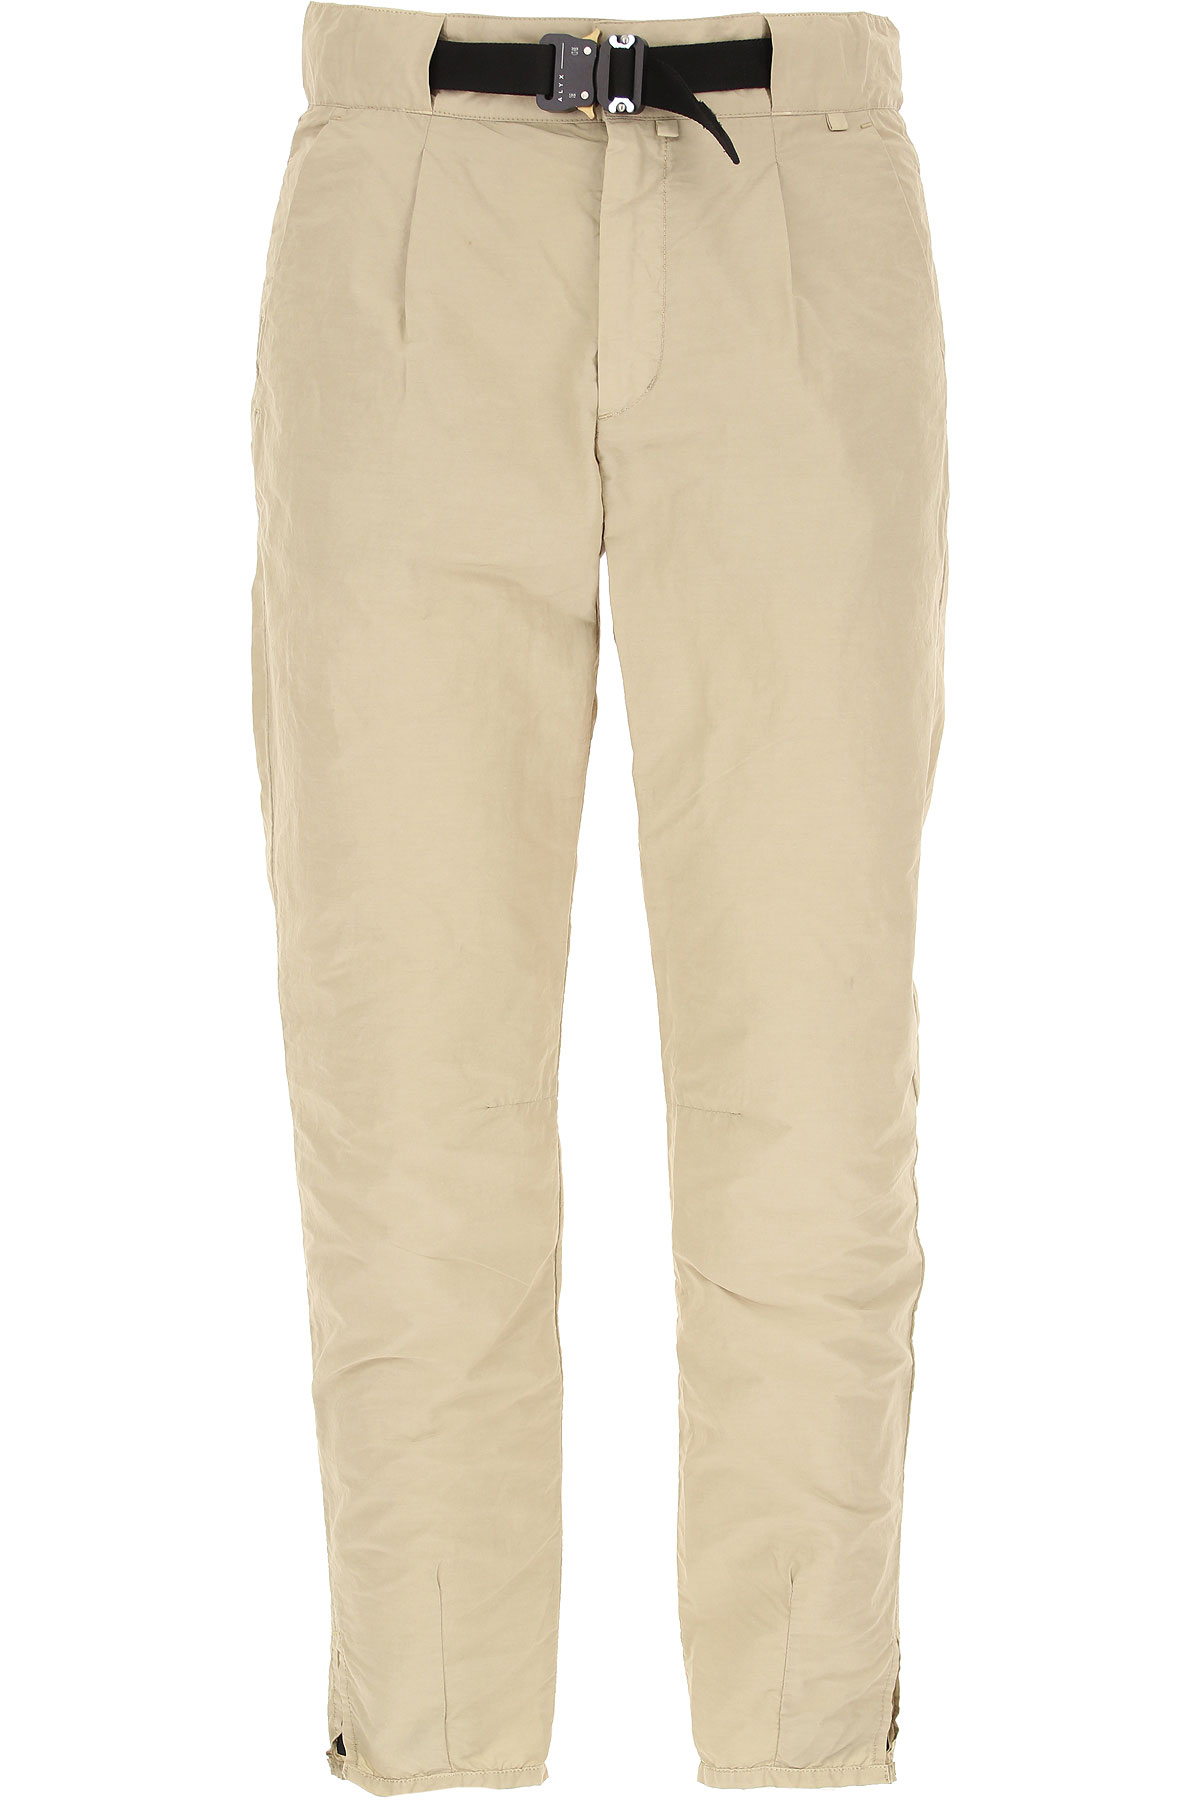 ALYX Pants for Men On Sale in Outlet, Beige, Cotton, 2019, 32